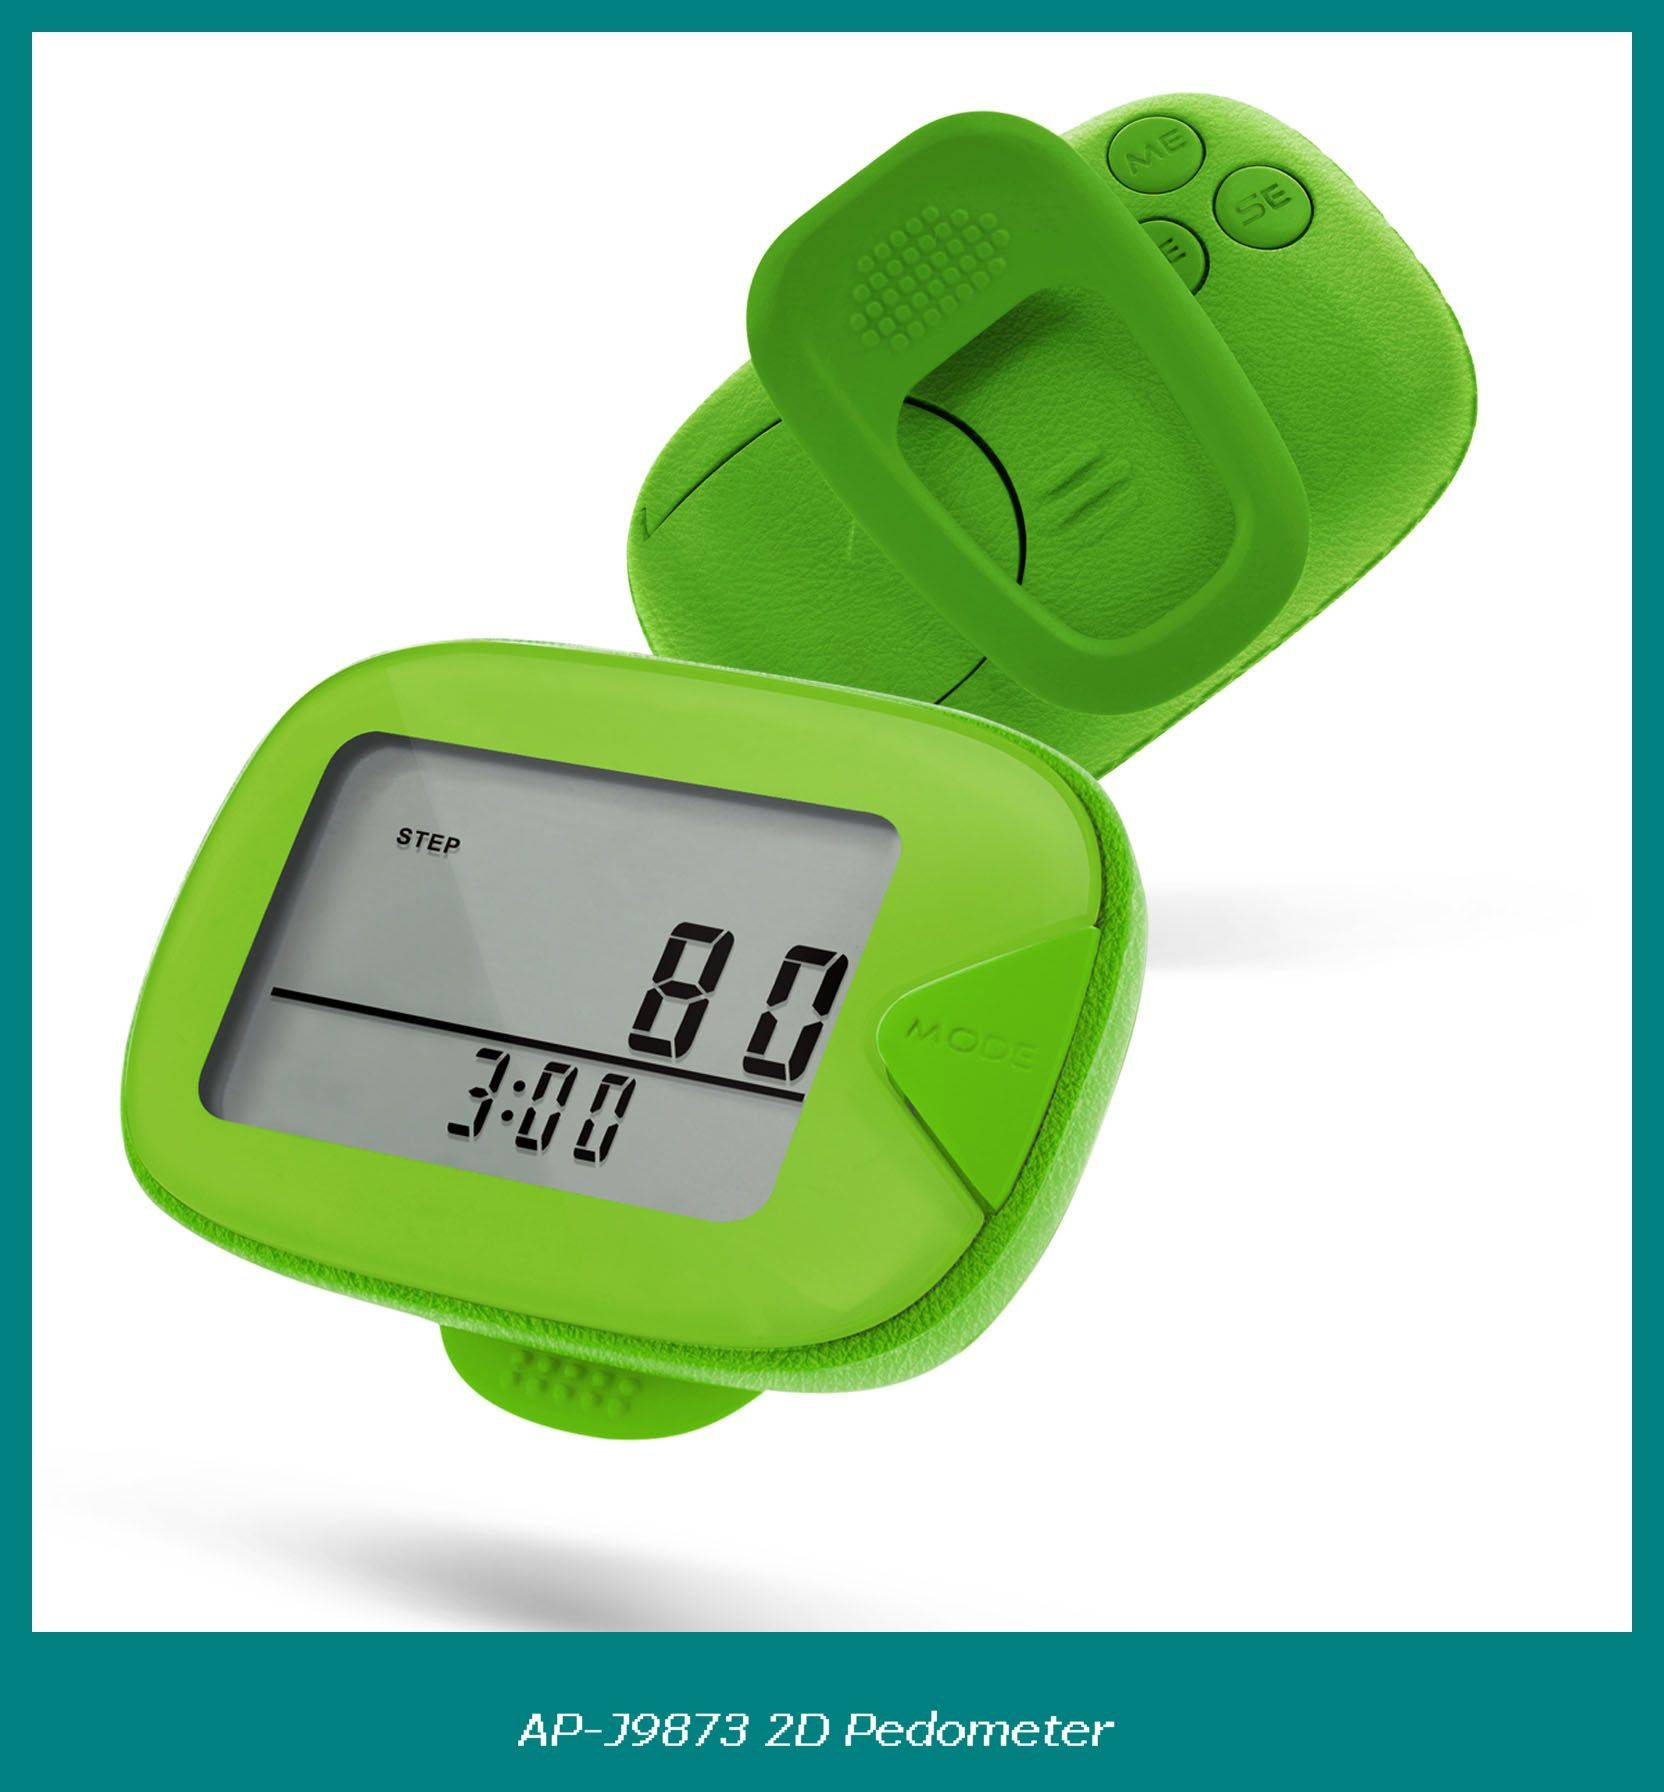 Colorful 7 days memory pedometer with large LCD